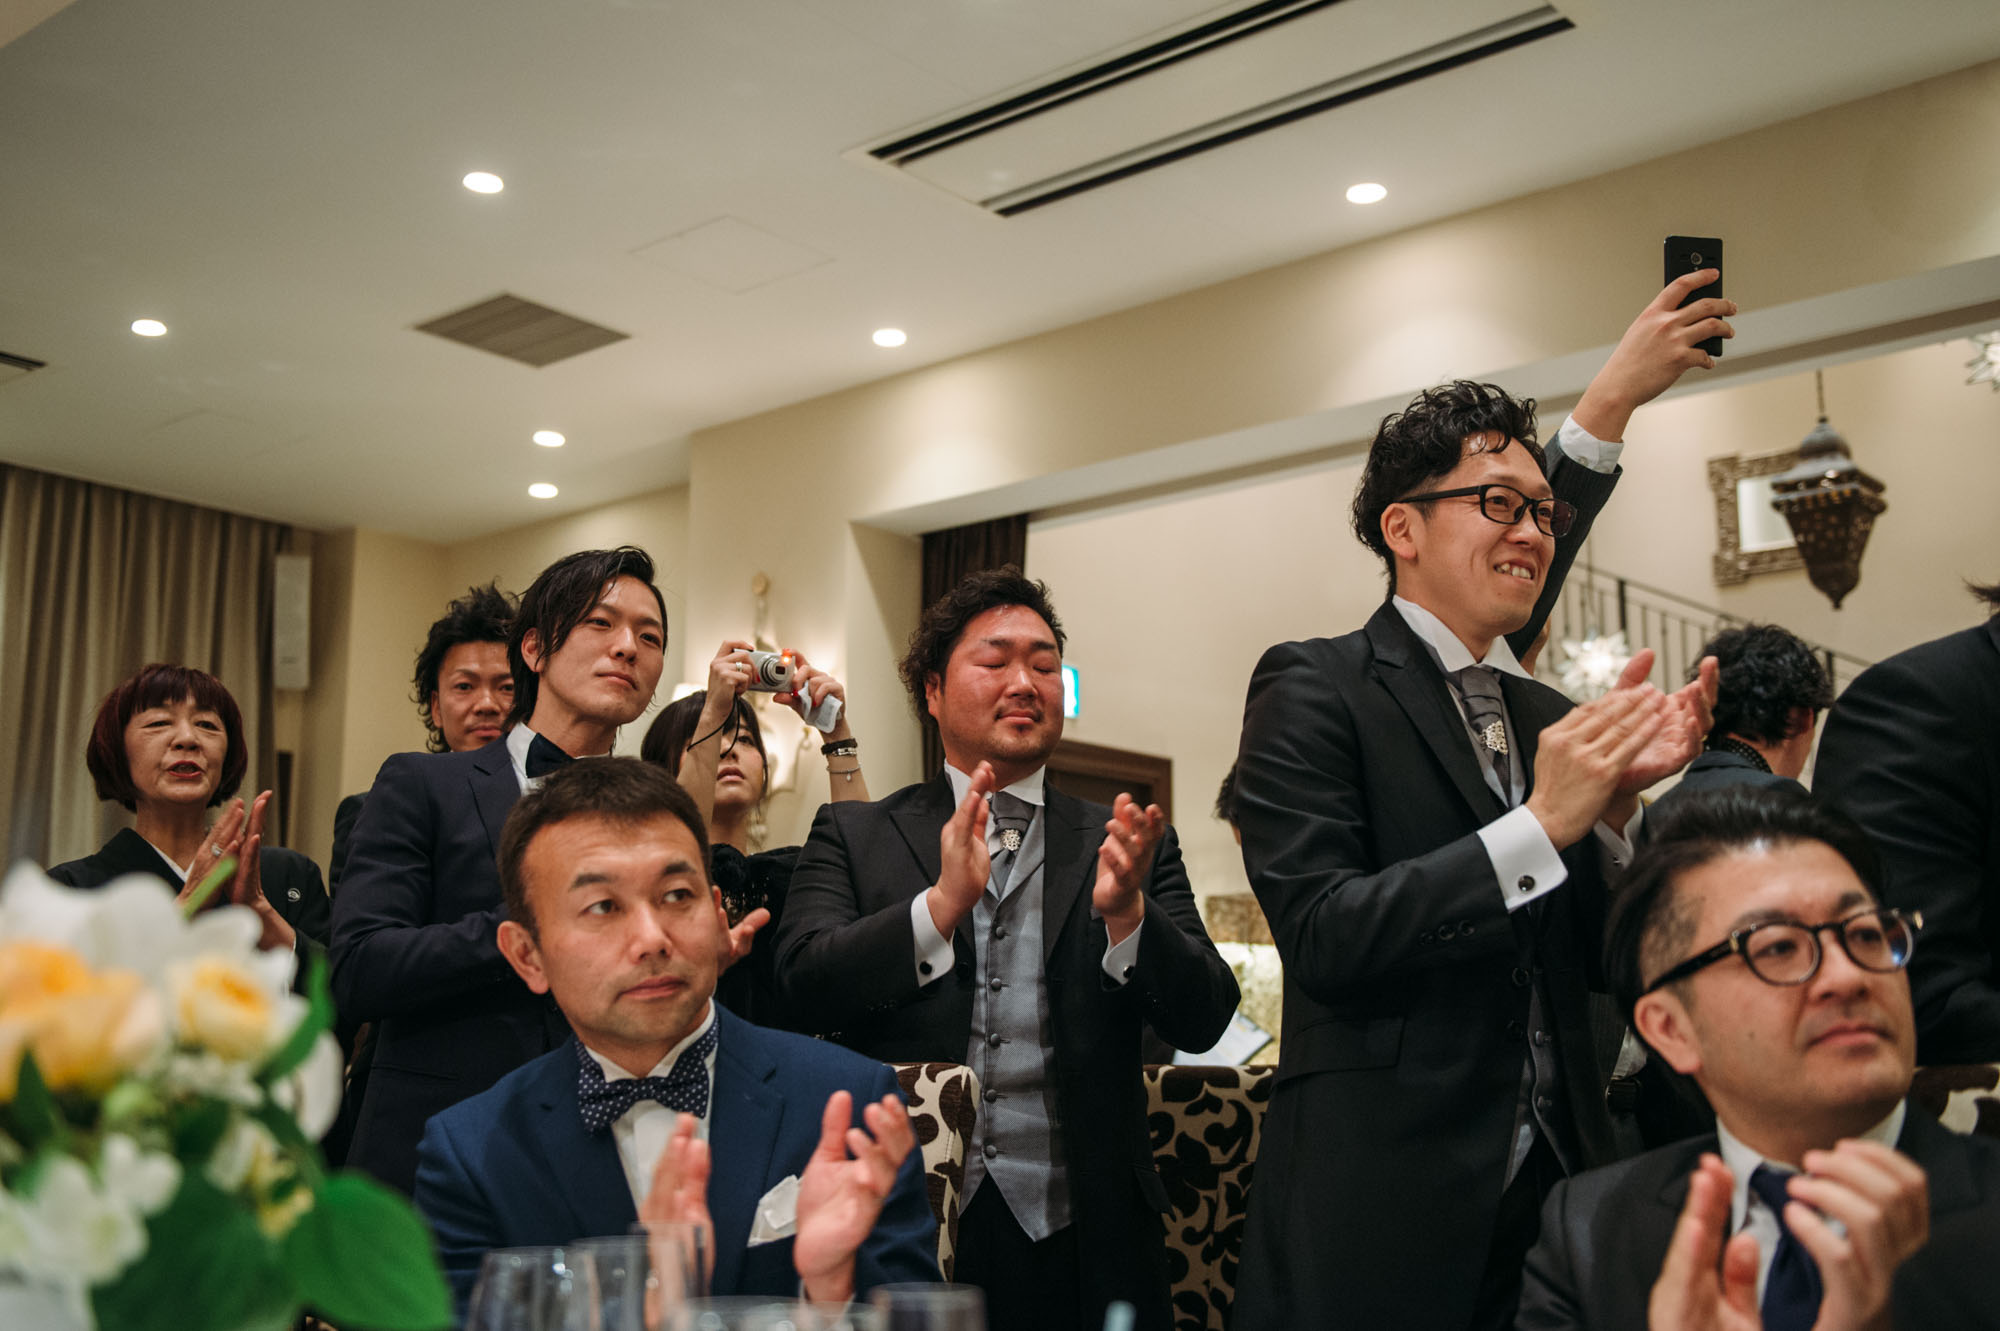 nagoya wedding83